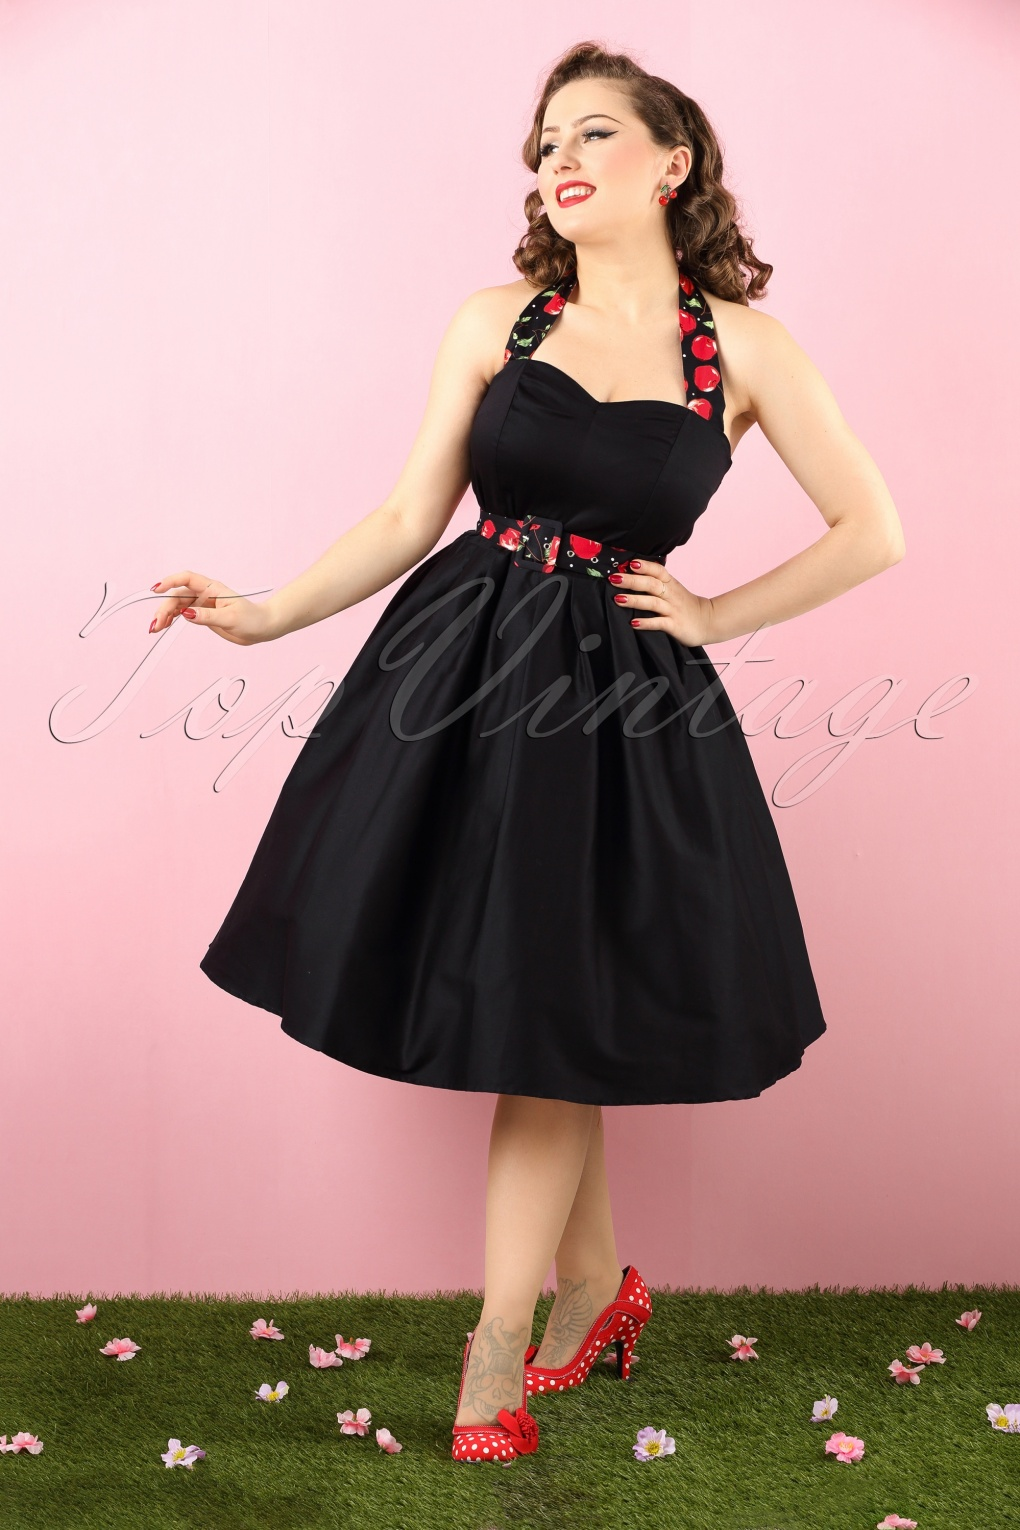 50s Sophie Halter Swing Dress in Black and Cherry